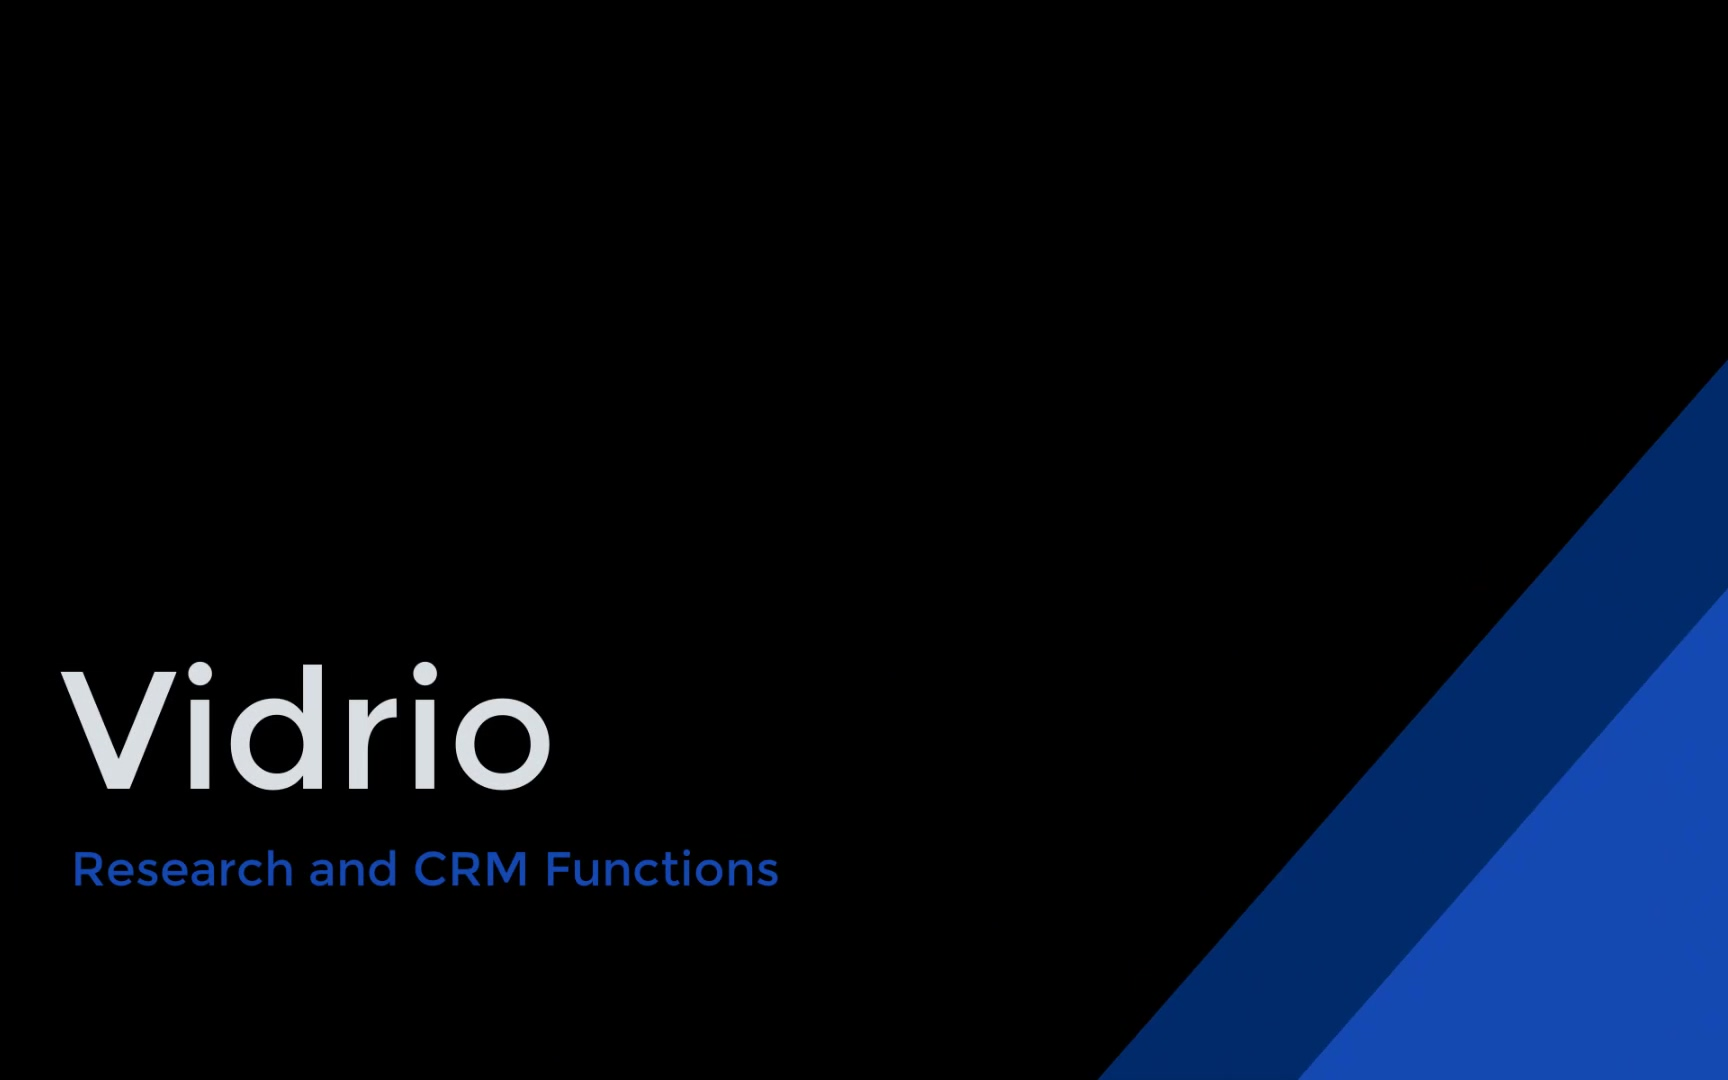 vidrio-research-and-crm